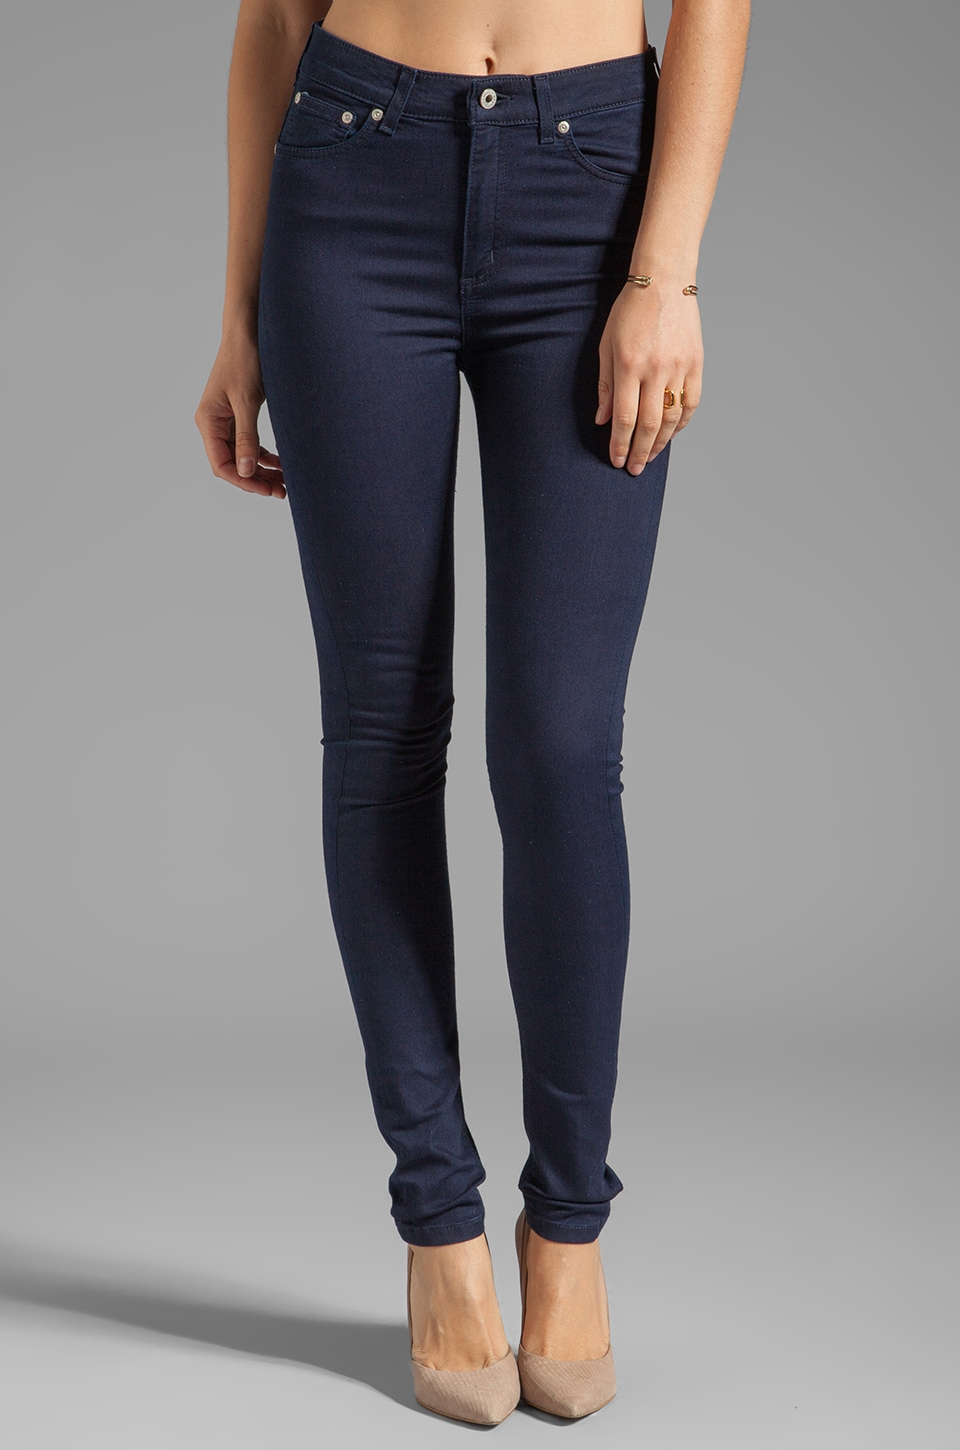 Naked & Famous Denim The Skinny in Ultra Soft Stretch Dark Indigo